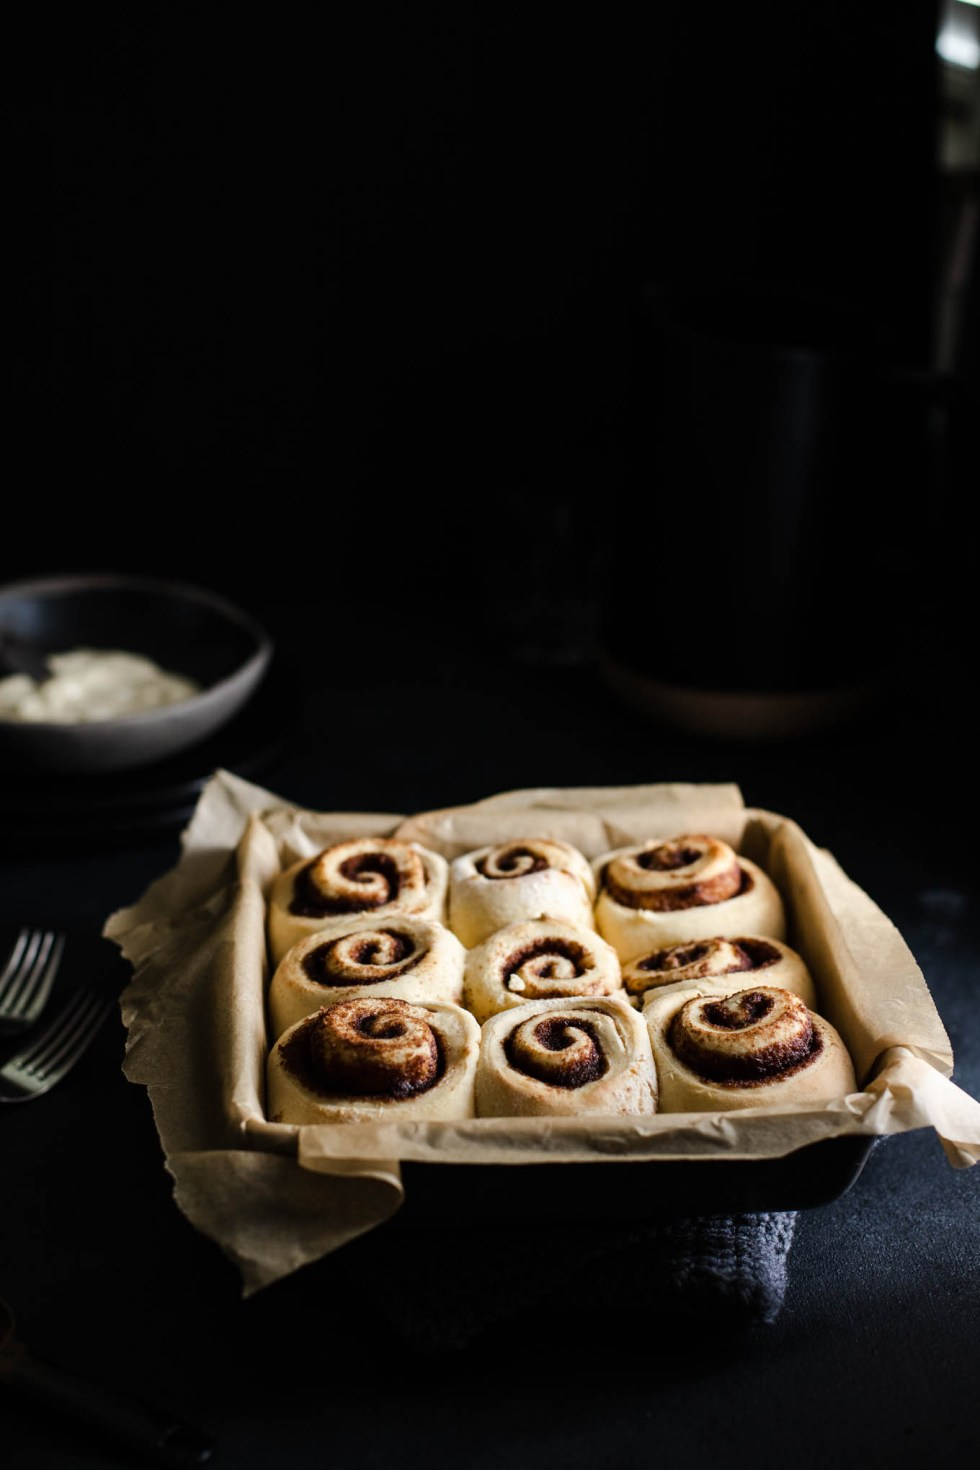 Browned cinnamon rolls resting in the pan after they've come out of the oven.